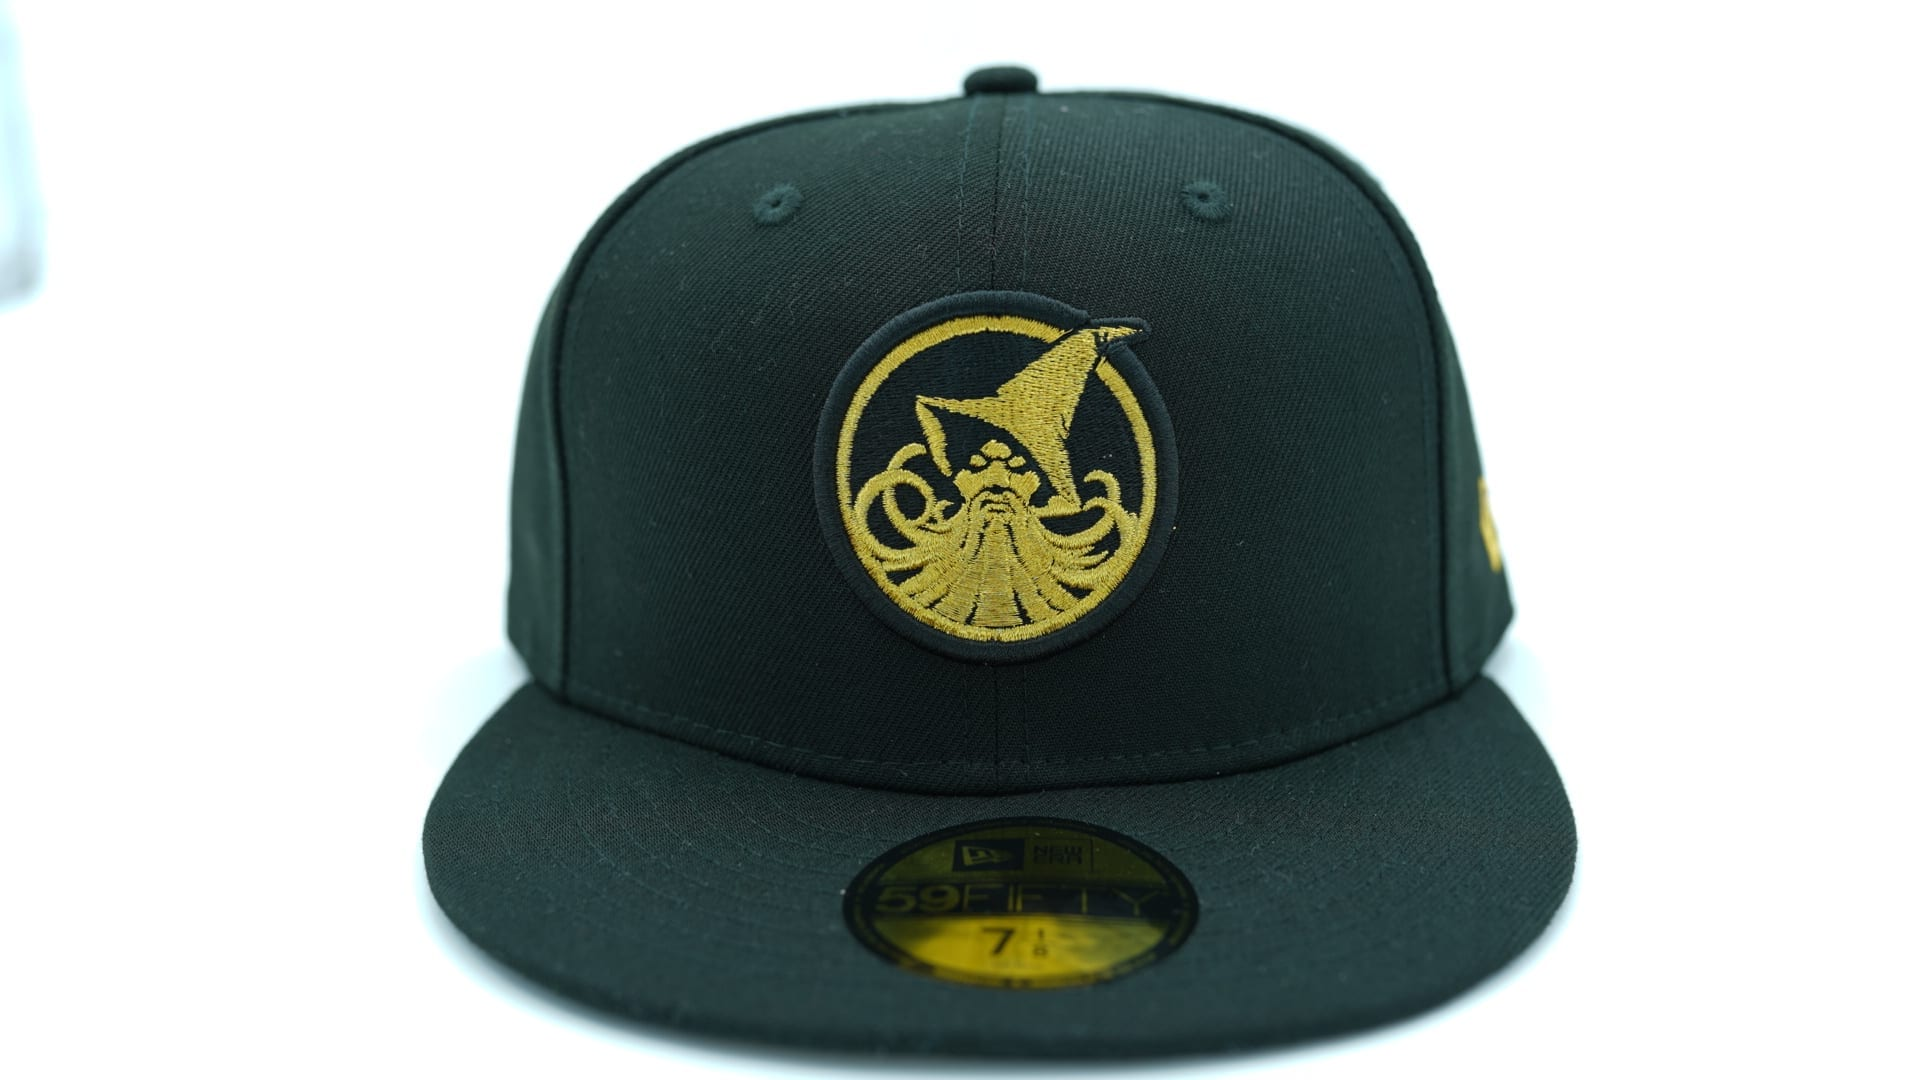 reputable site 8aa39 fa8c4 New-Era-x-MLB-Ny-mets-fitted-cap-